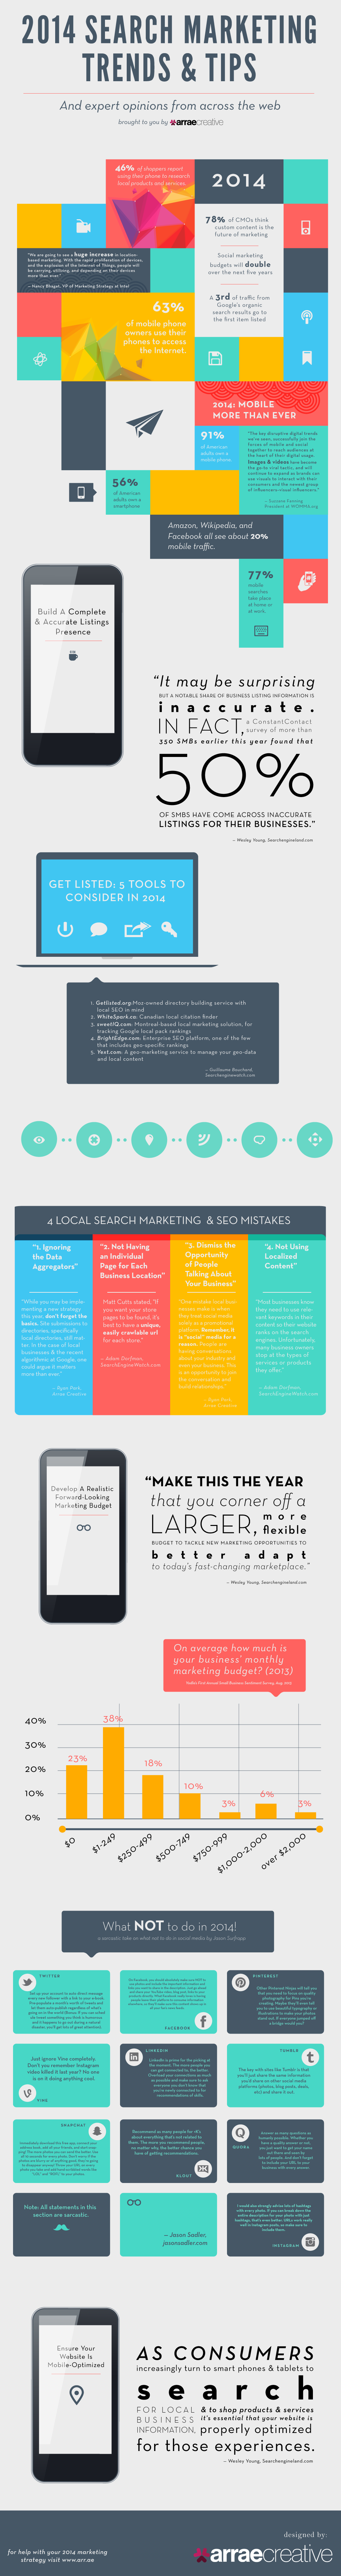 2014 Digital Marketing Trends And Tips [INFOGRAPHIC]